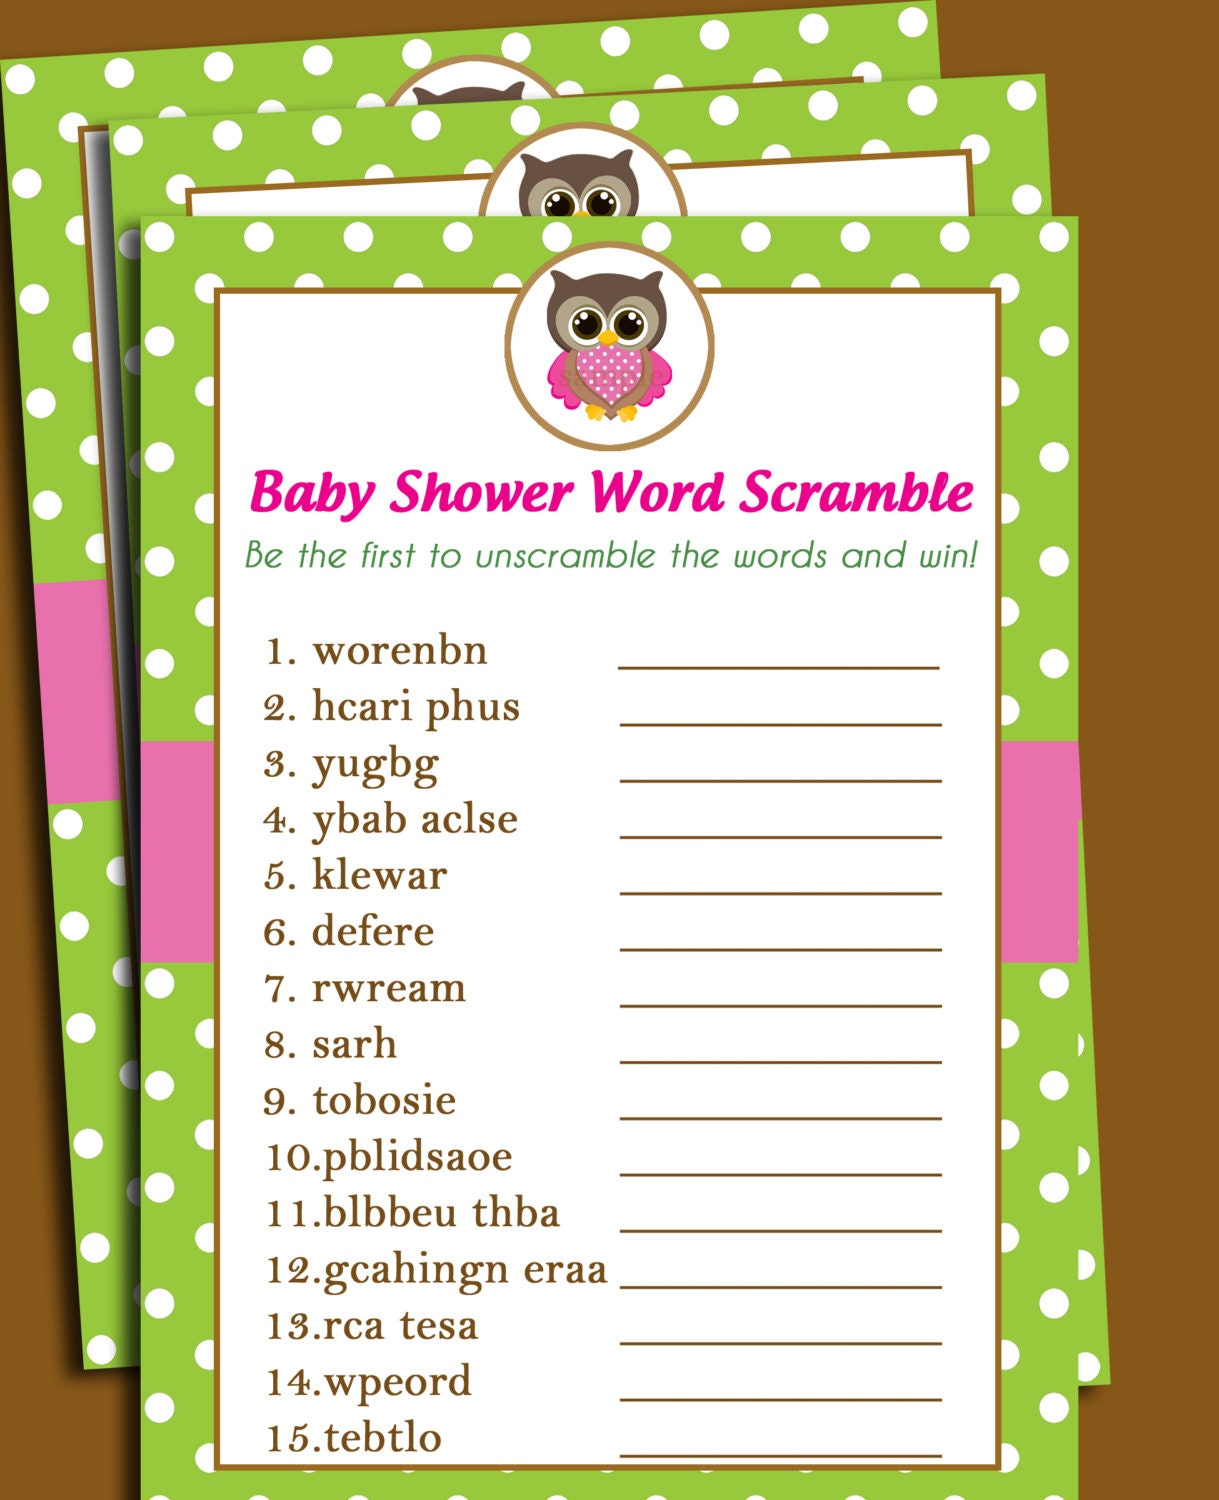 Owl Baby Shower Word Scramble Printable - Lil' Owl Collection - Girl ...